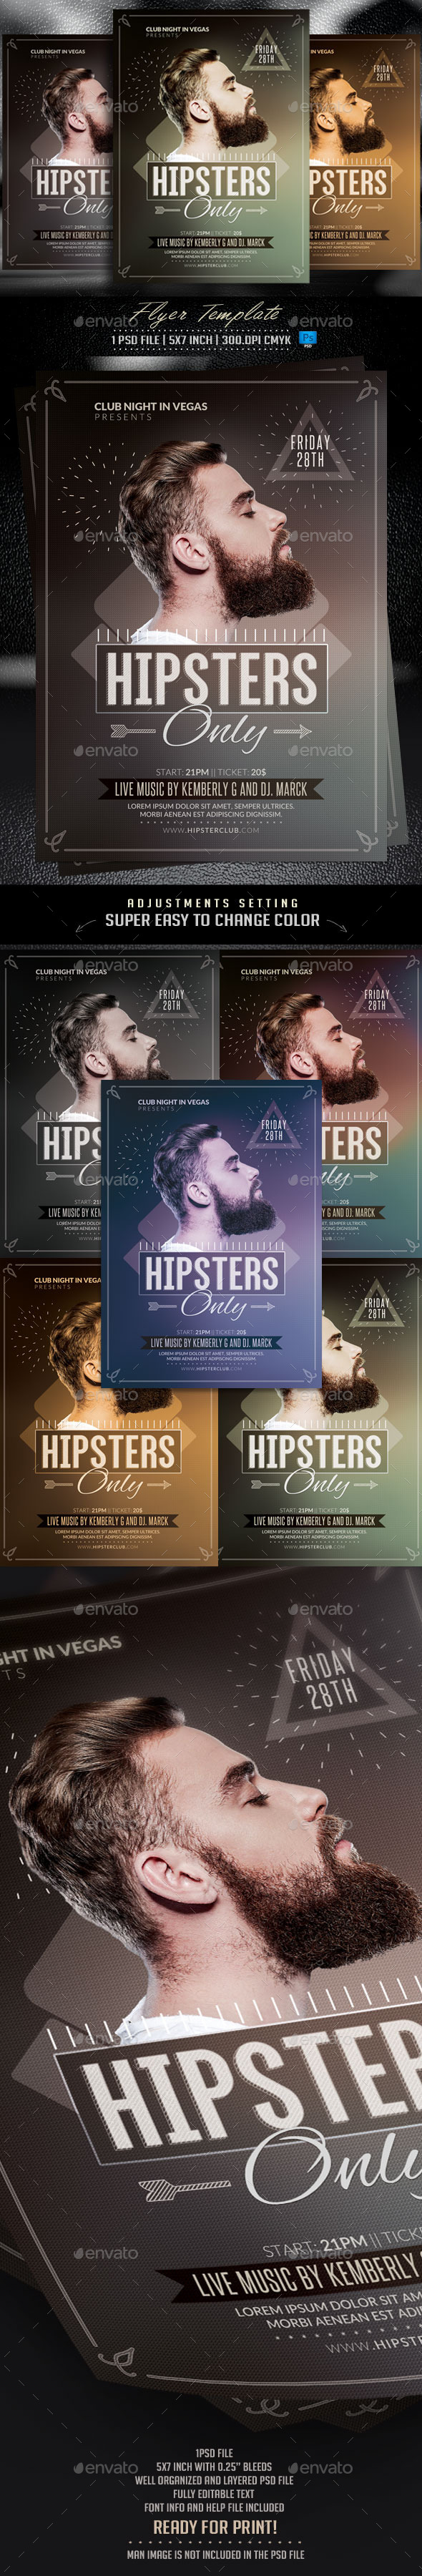 Hipsters Only Flyer Template - Events Flyers